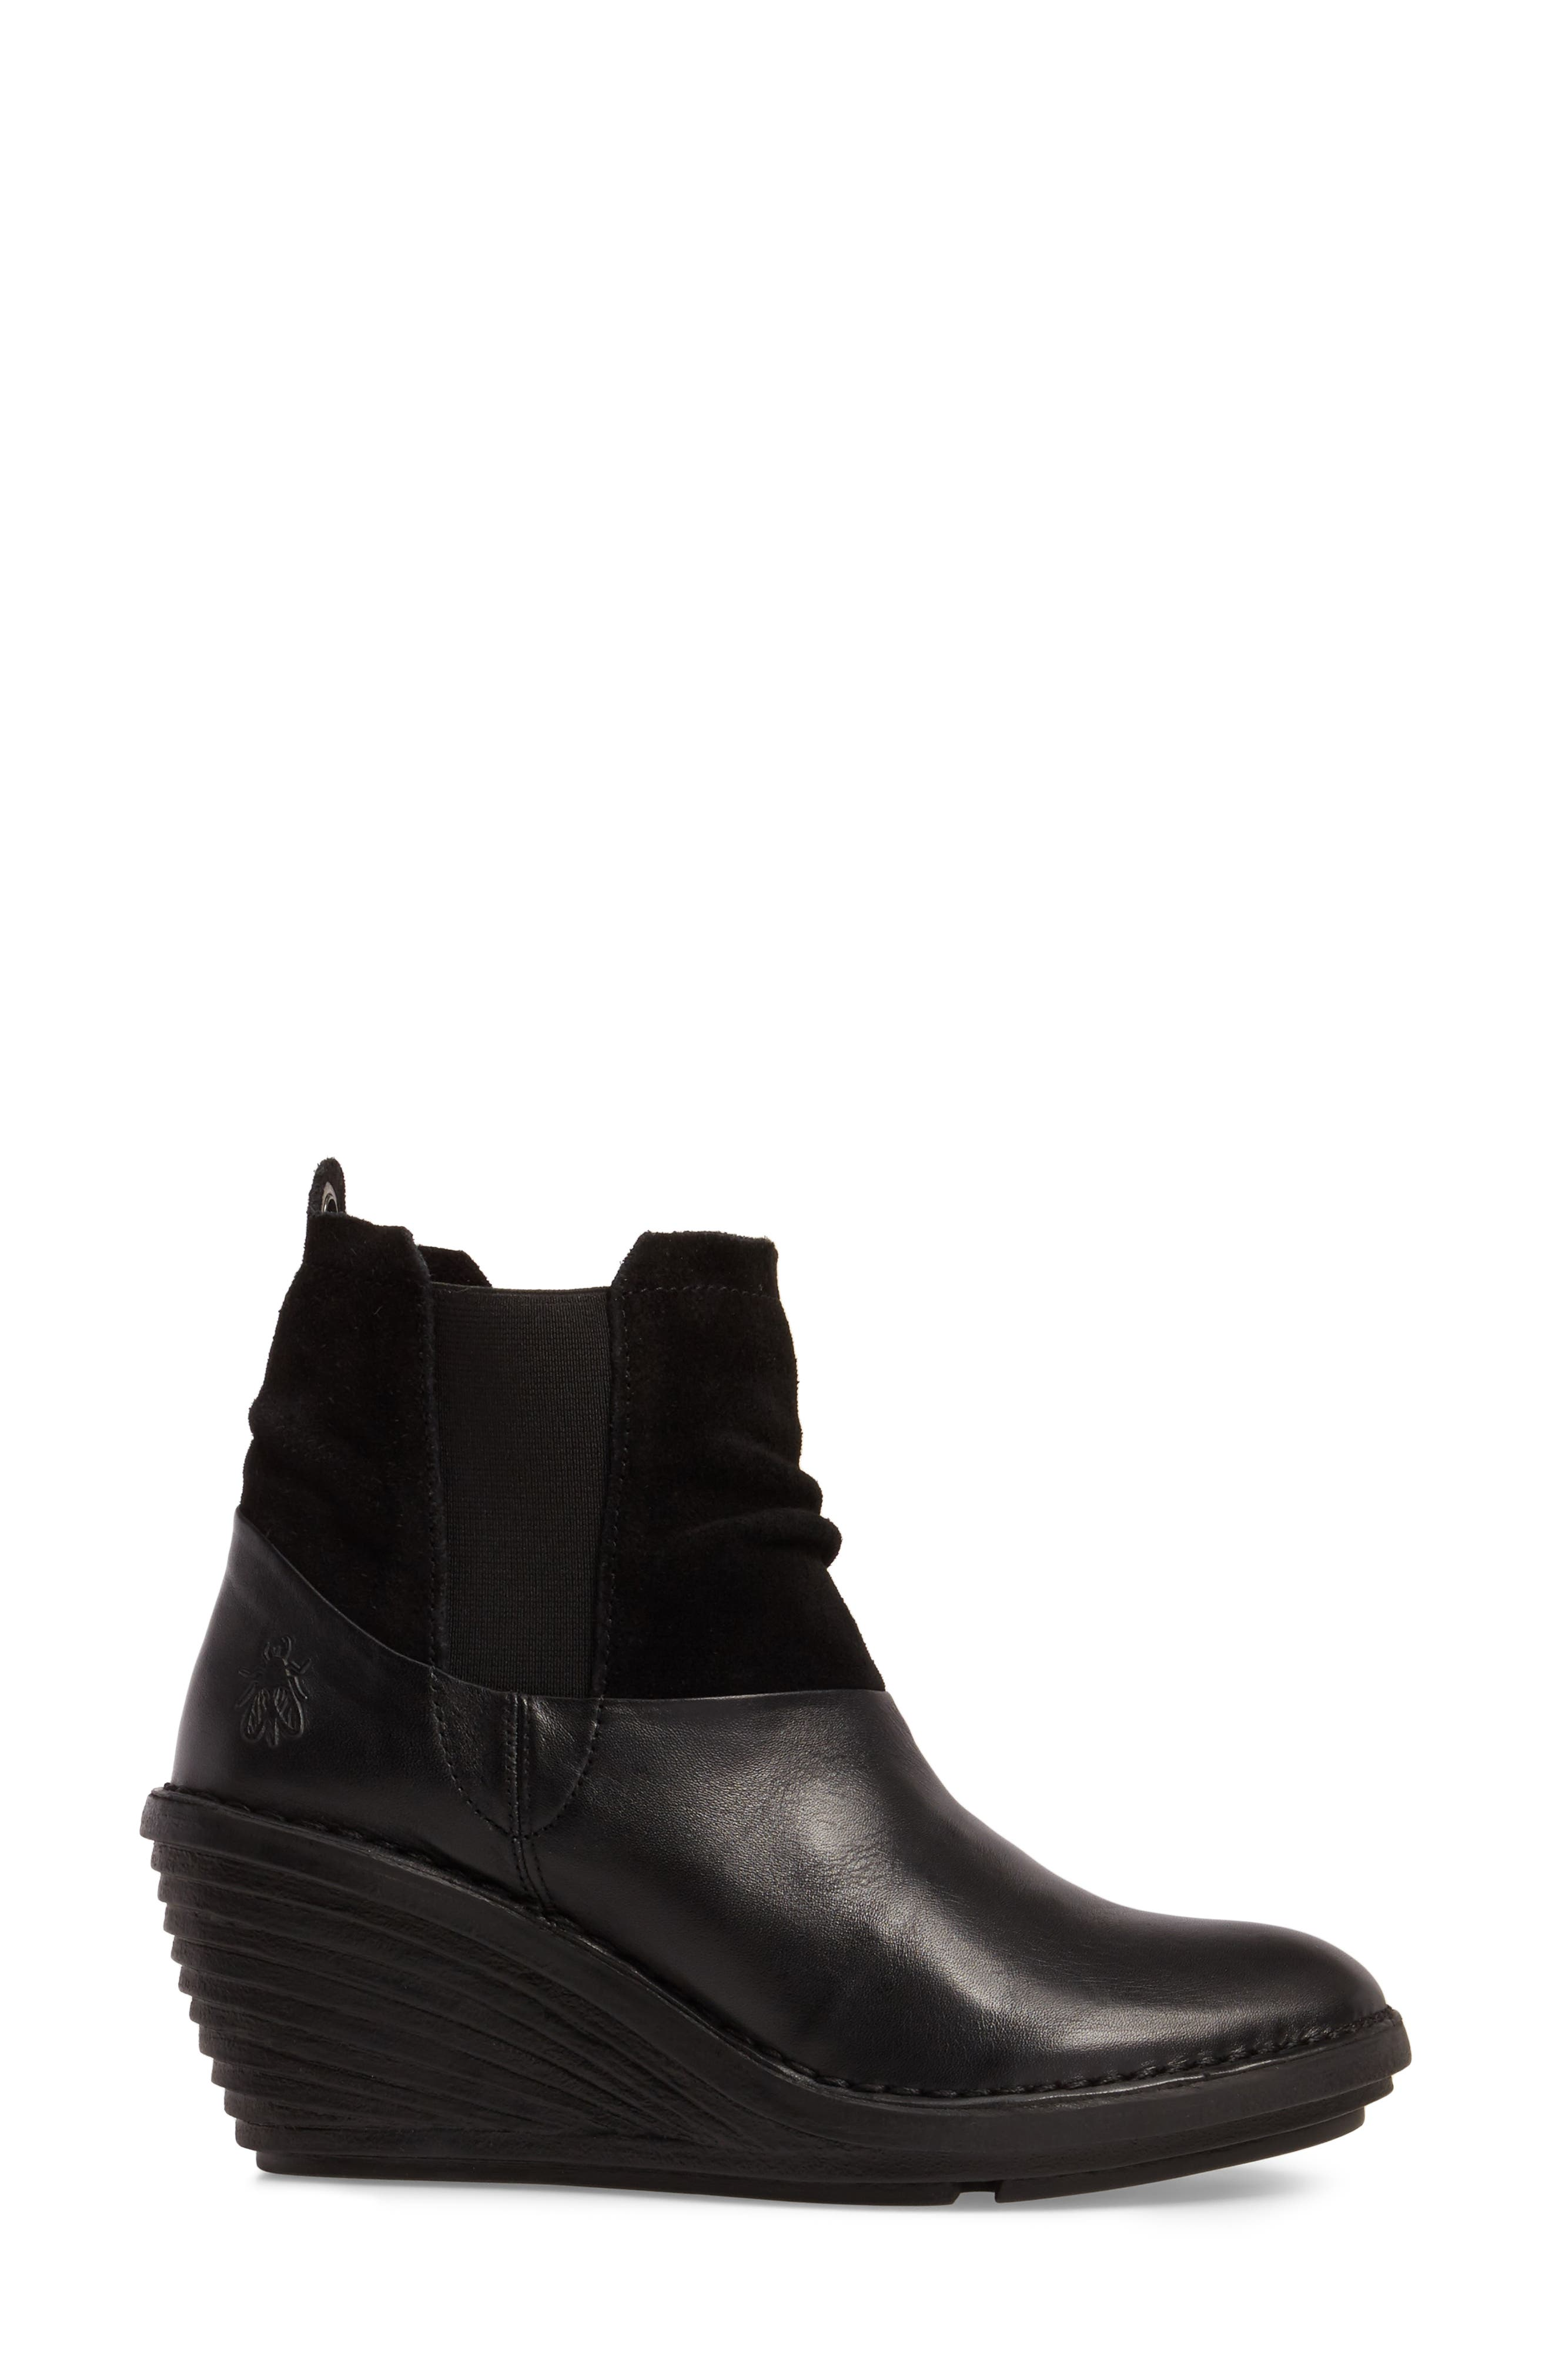 Sula Wedge Bootie,                             Alternate thumbnail 3, color,                             001